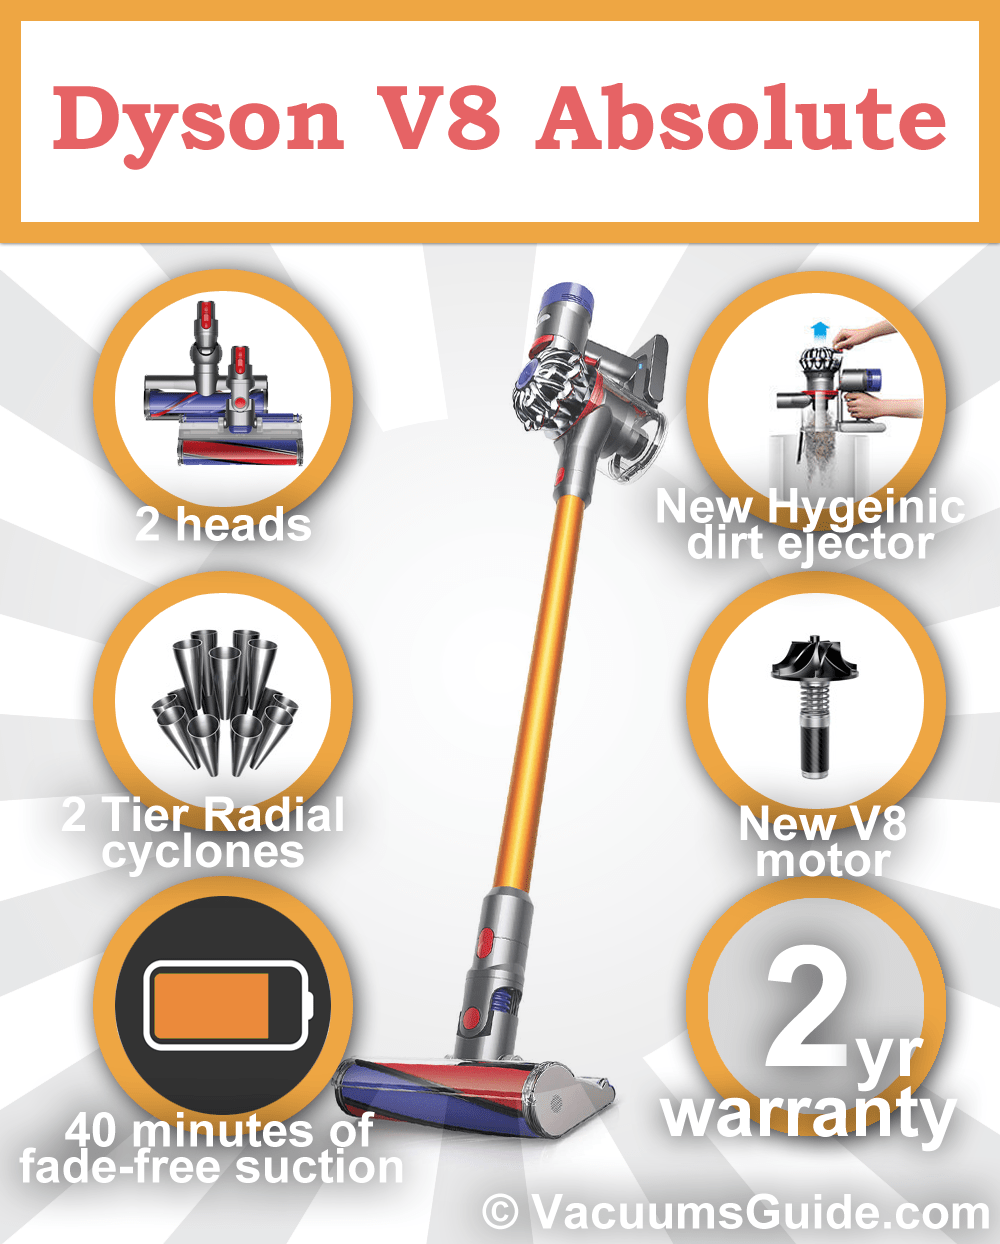 Dyson V8 features